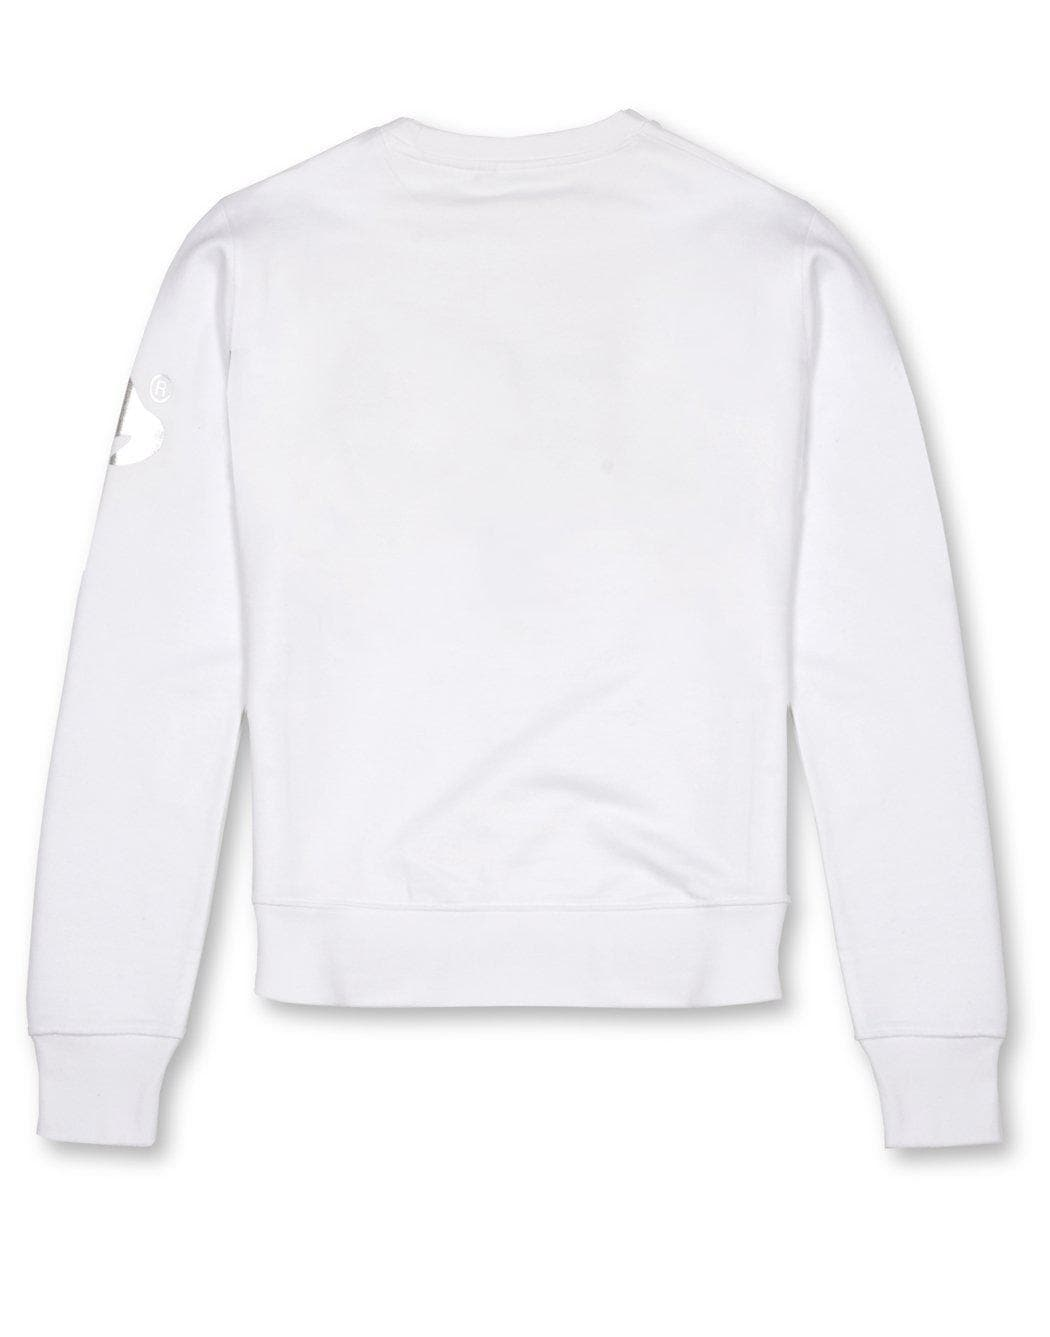 Money Clothing signature logo print crew neck sweater in white